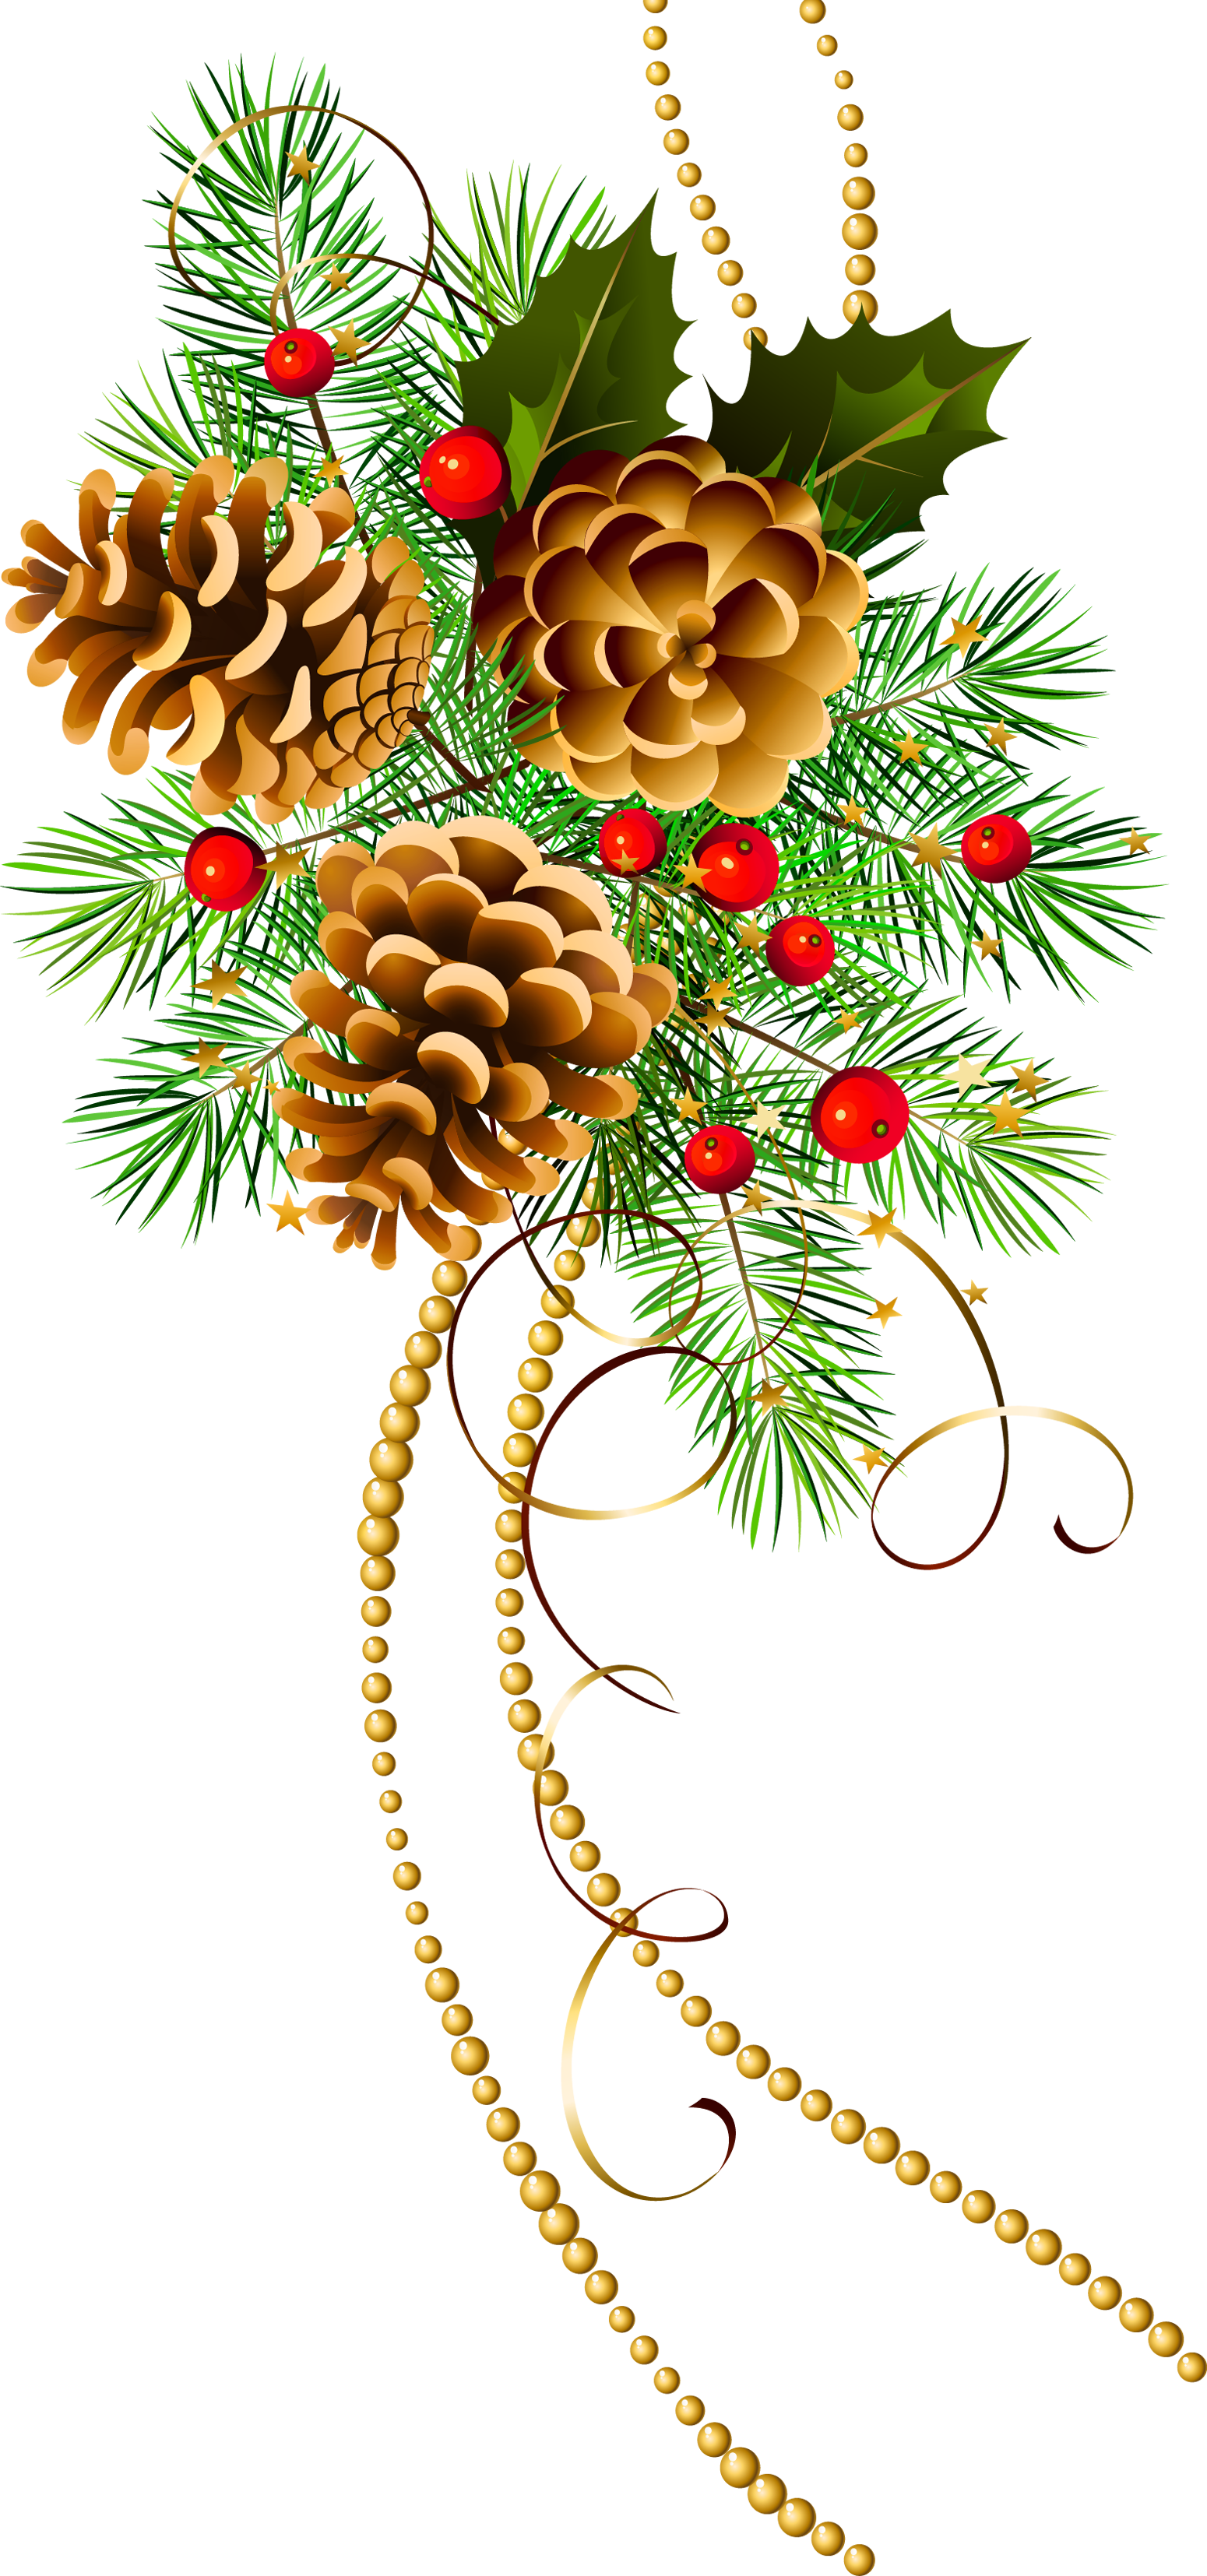 Pine and pine cones Christmas clip art large.